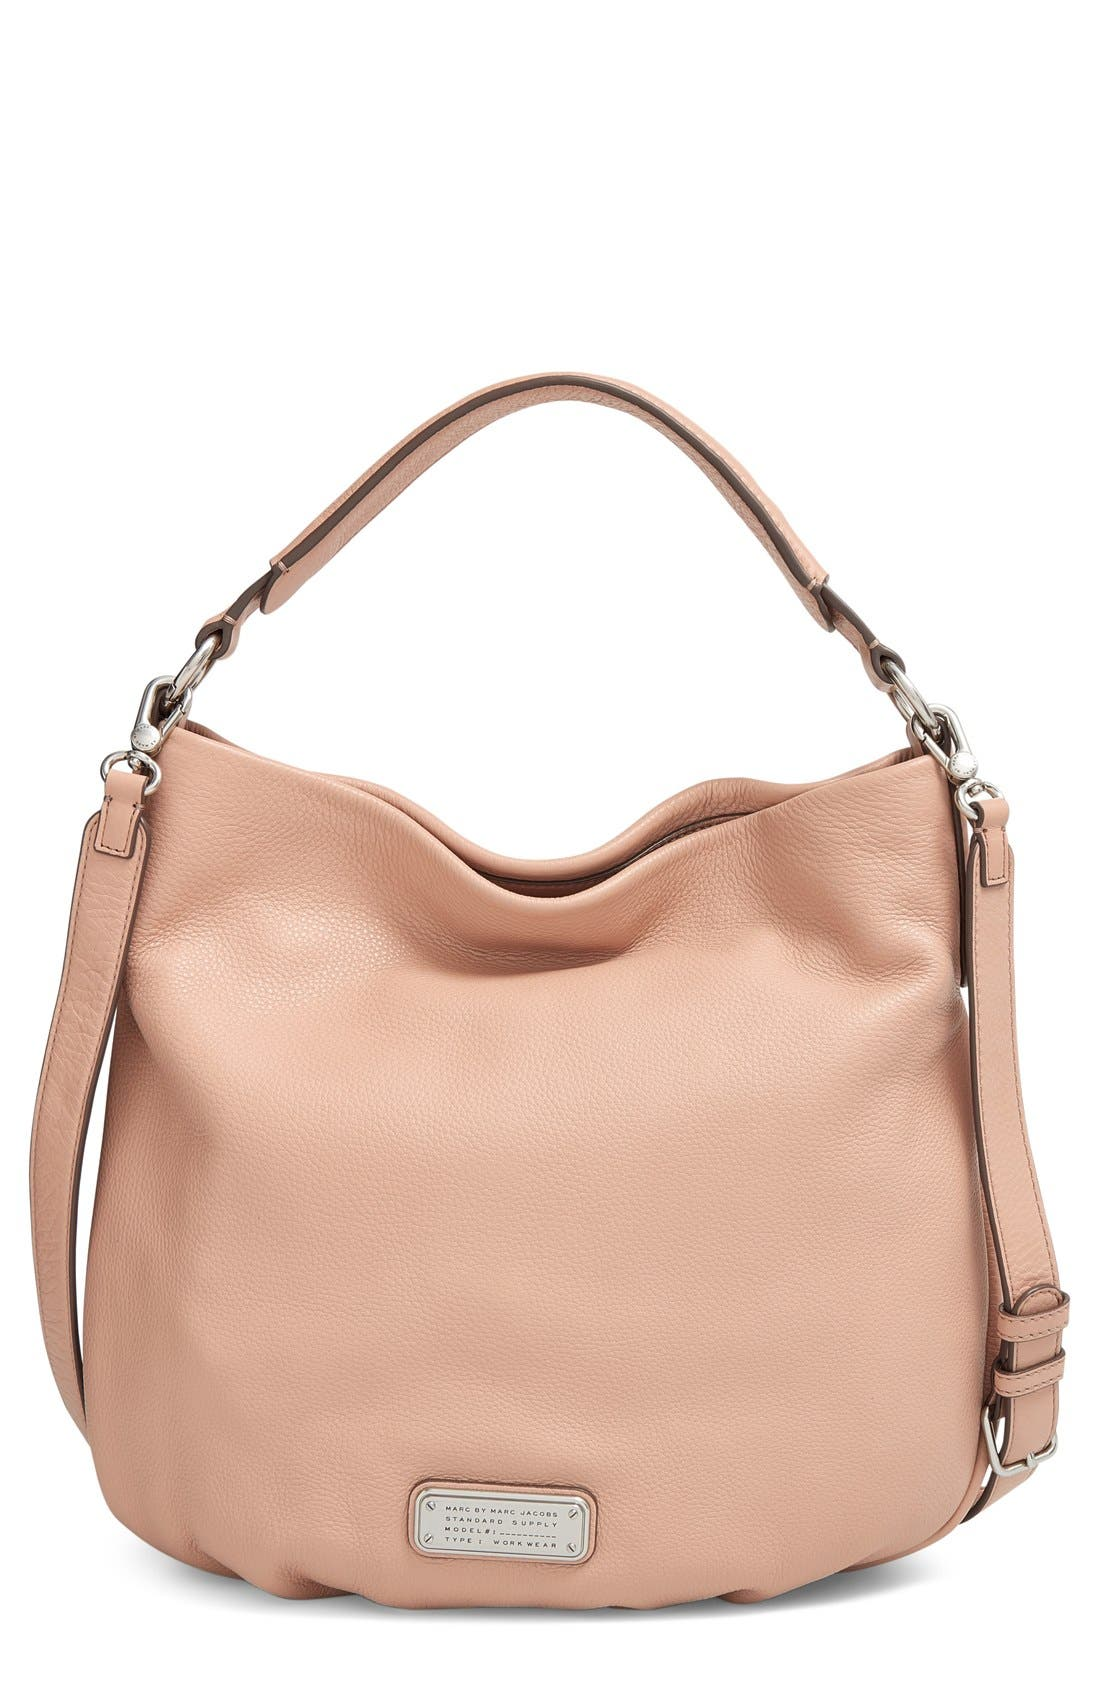 MARC BY MARC JACOBS 'New Q Hillier' Hobo,                         Main,                         color, Cameo Nude